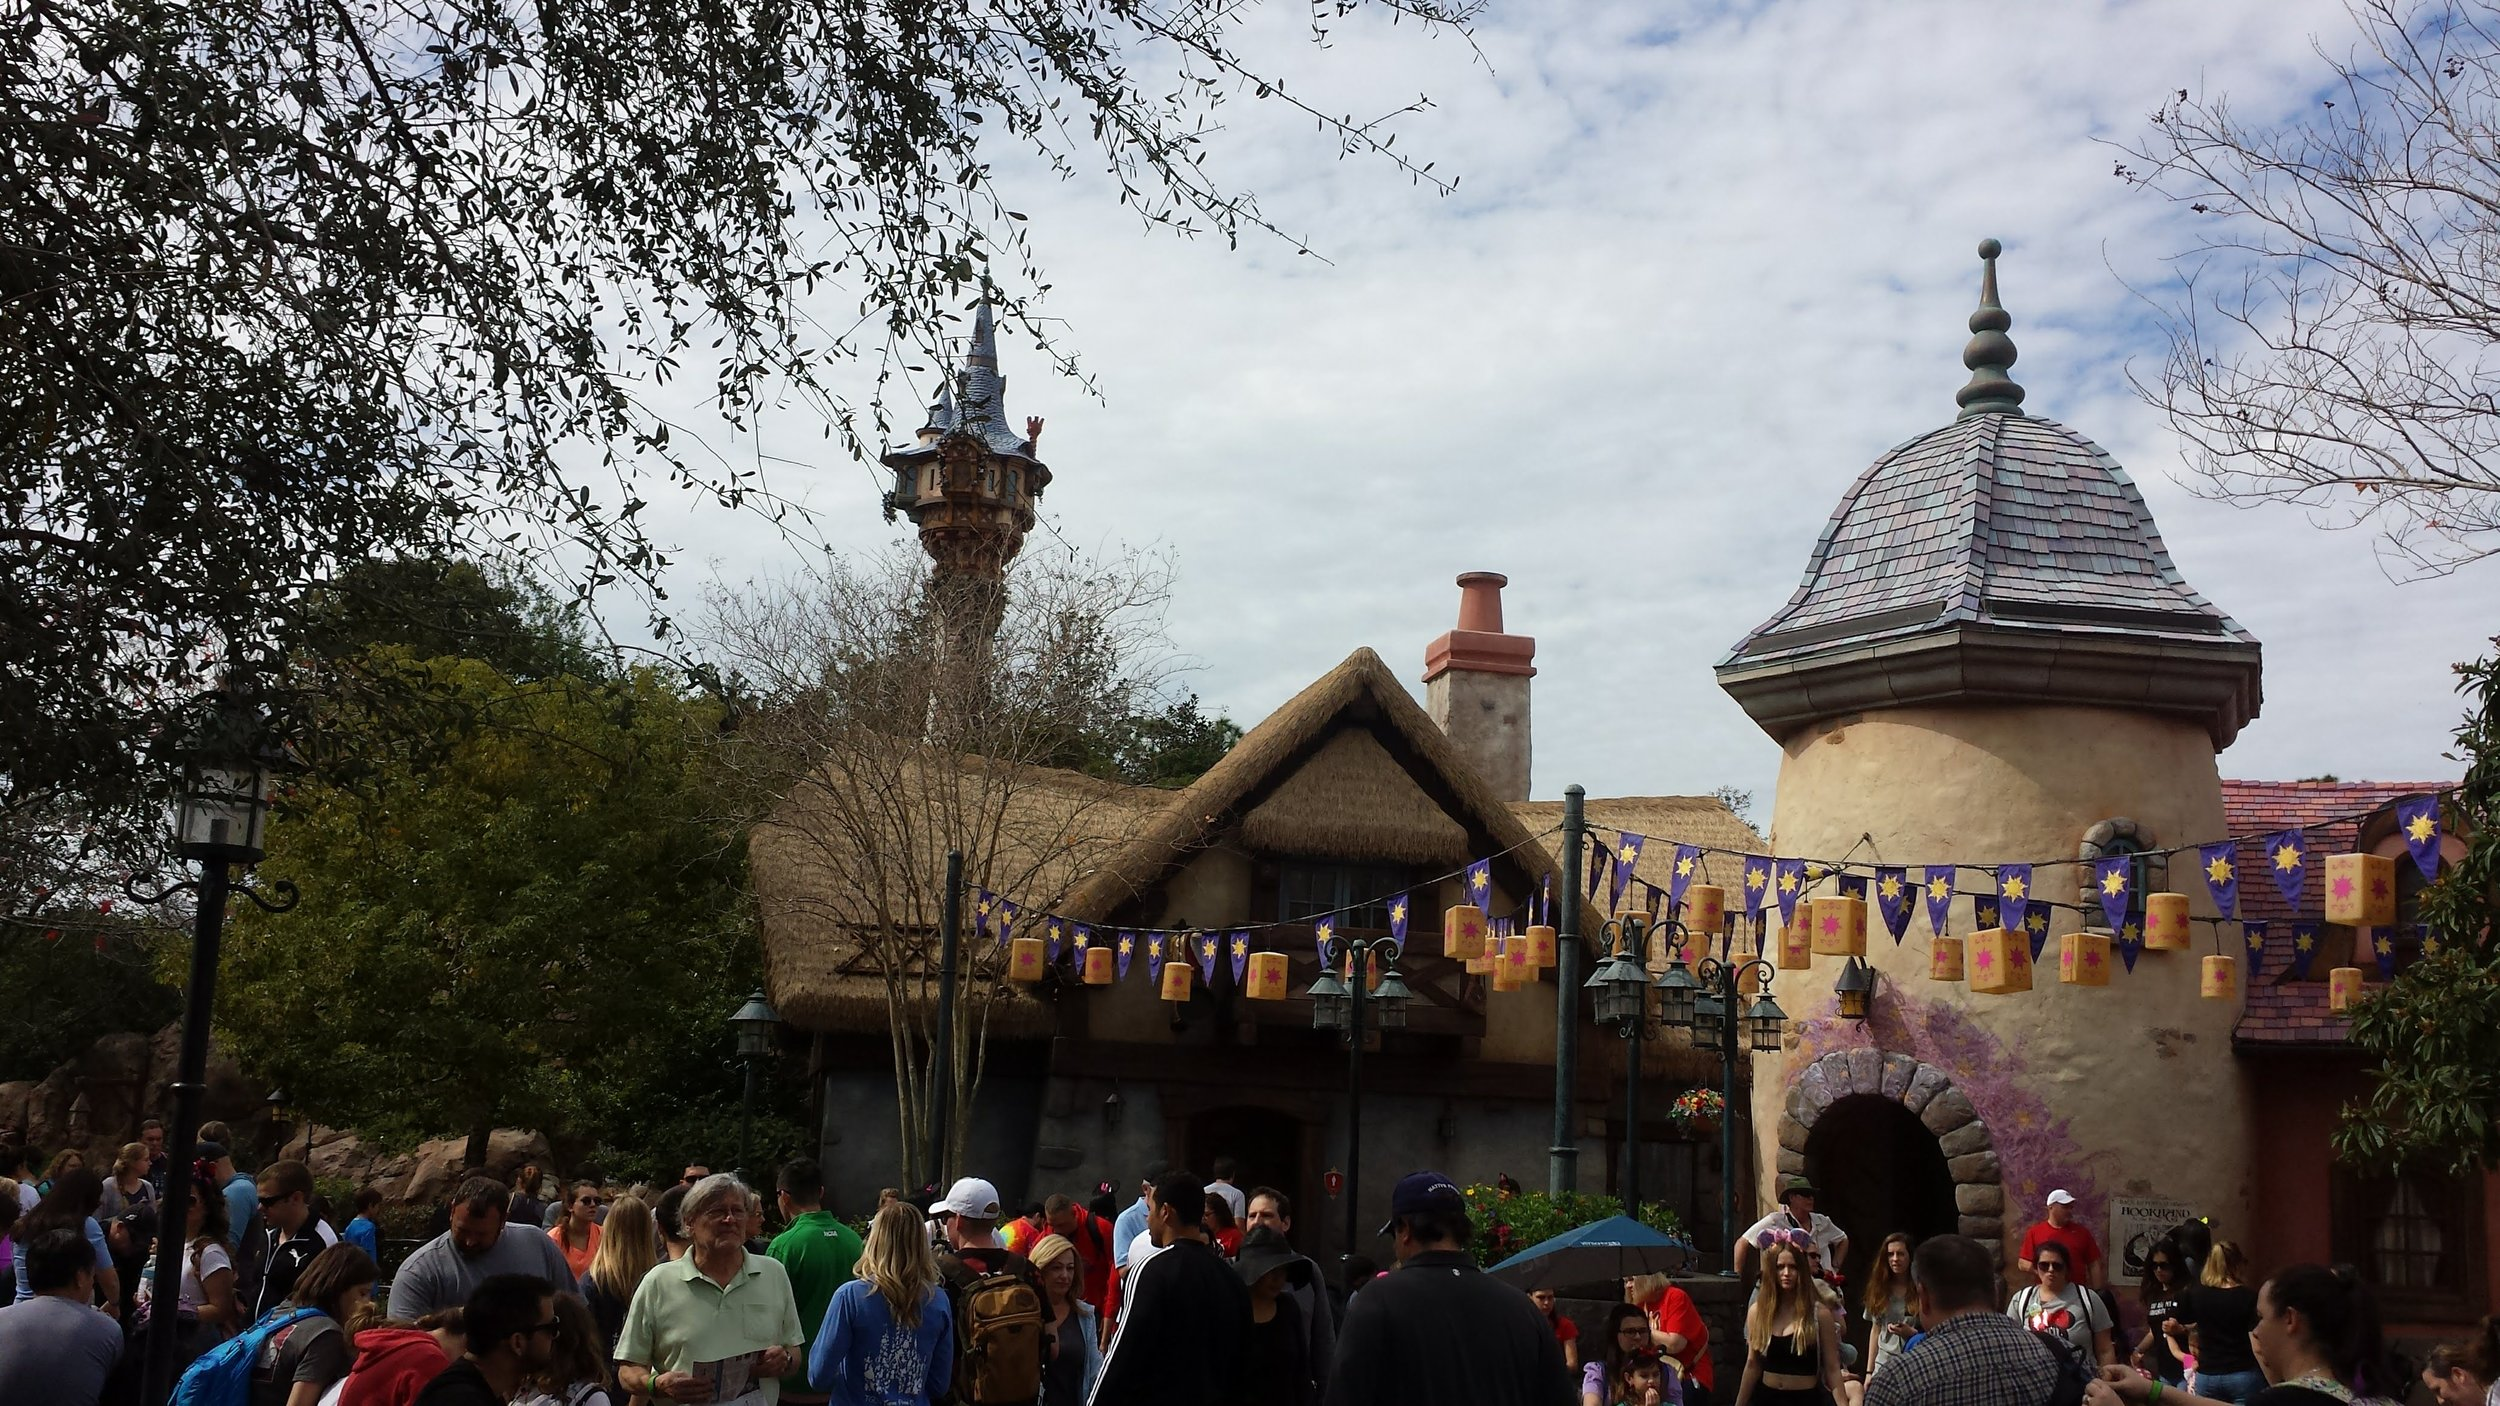 The most attractive bathroom exterior ever: the tangled bathrooms in the magic kingdom.